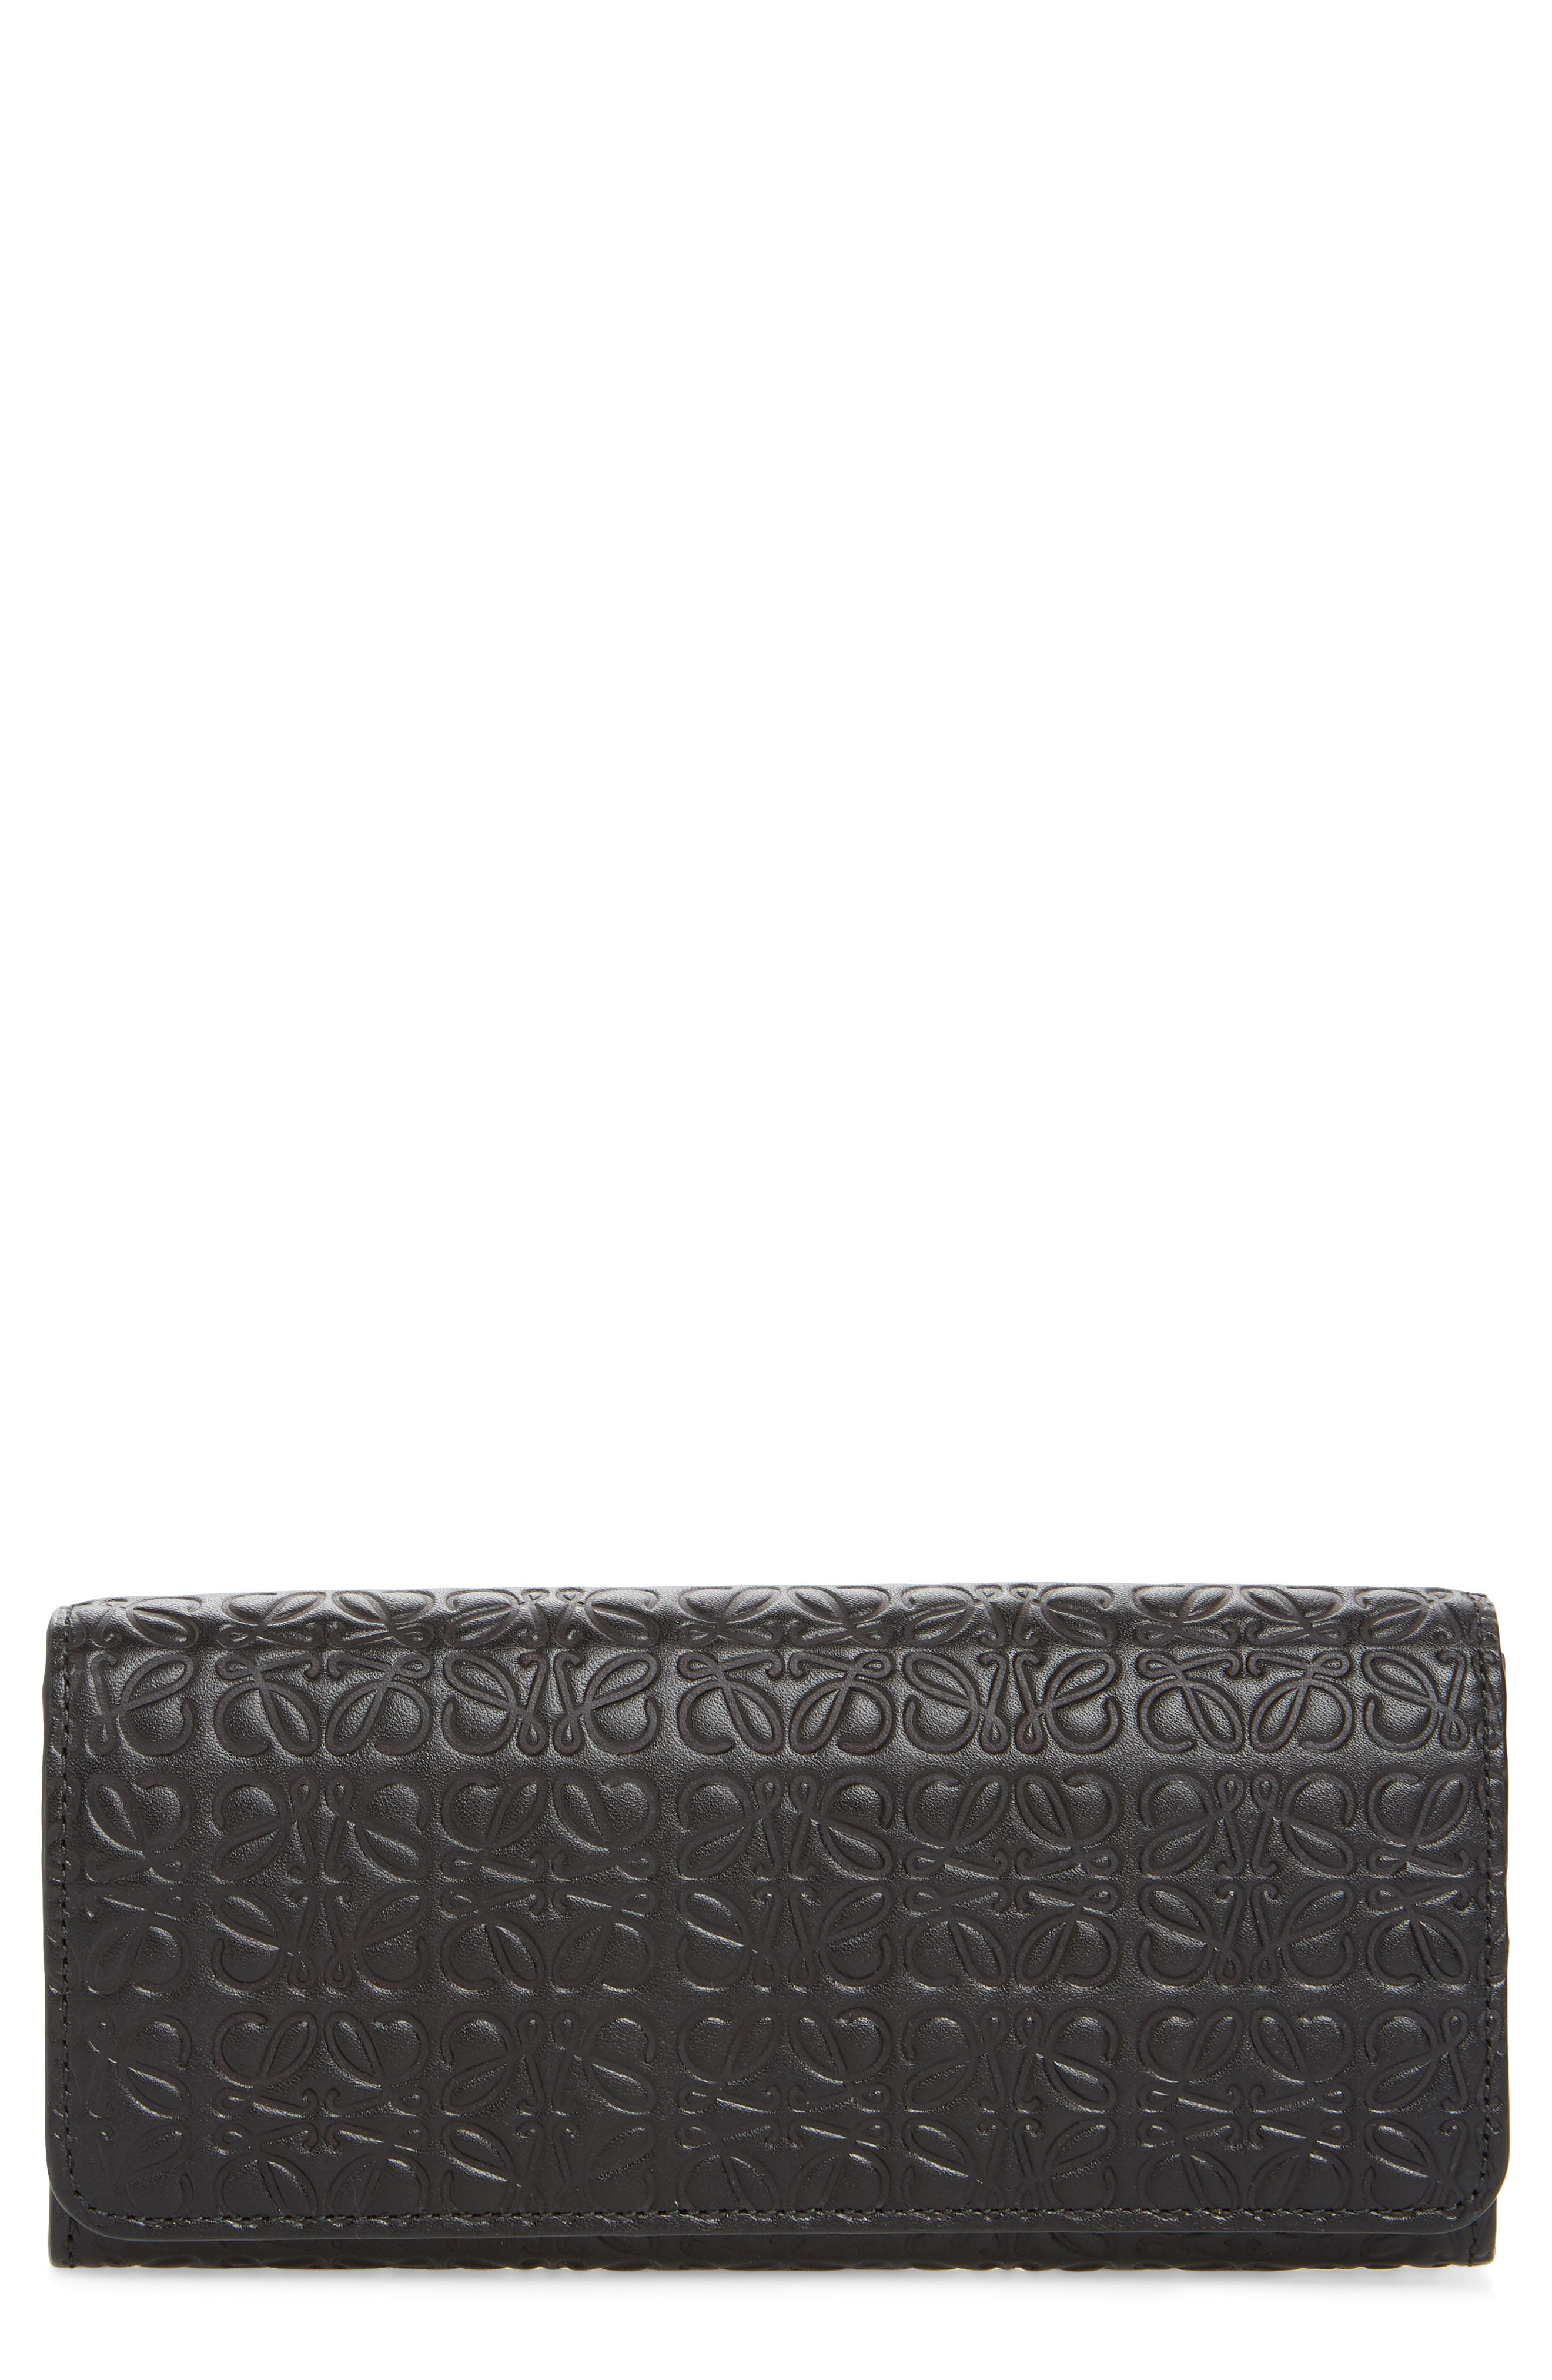 Continental Leather Zip Wallet,                             Main thumbnail 1, color,                             BLACK